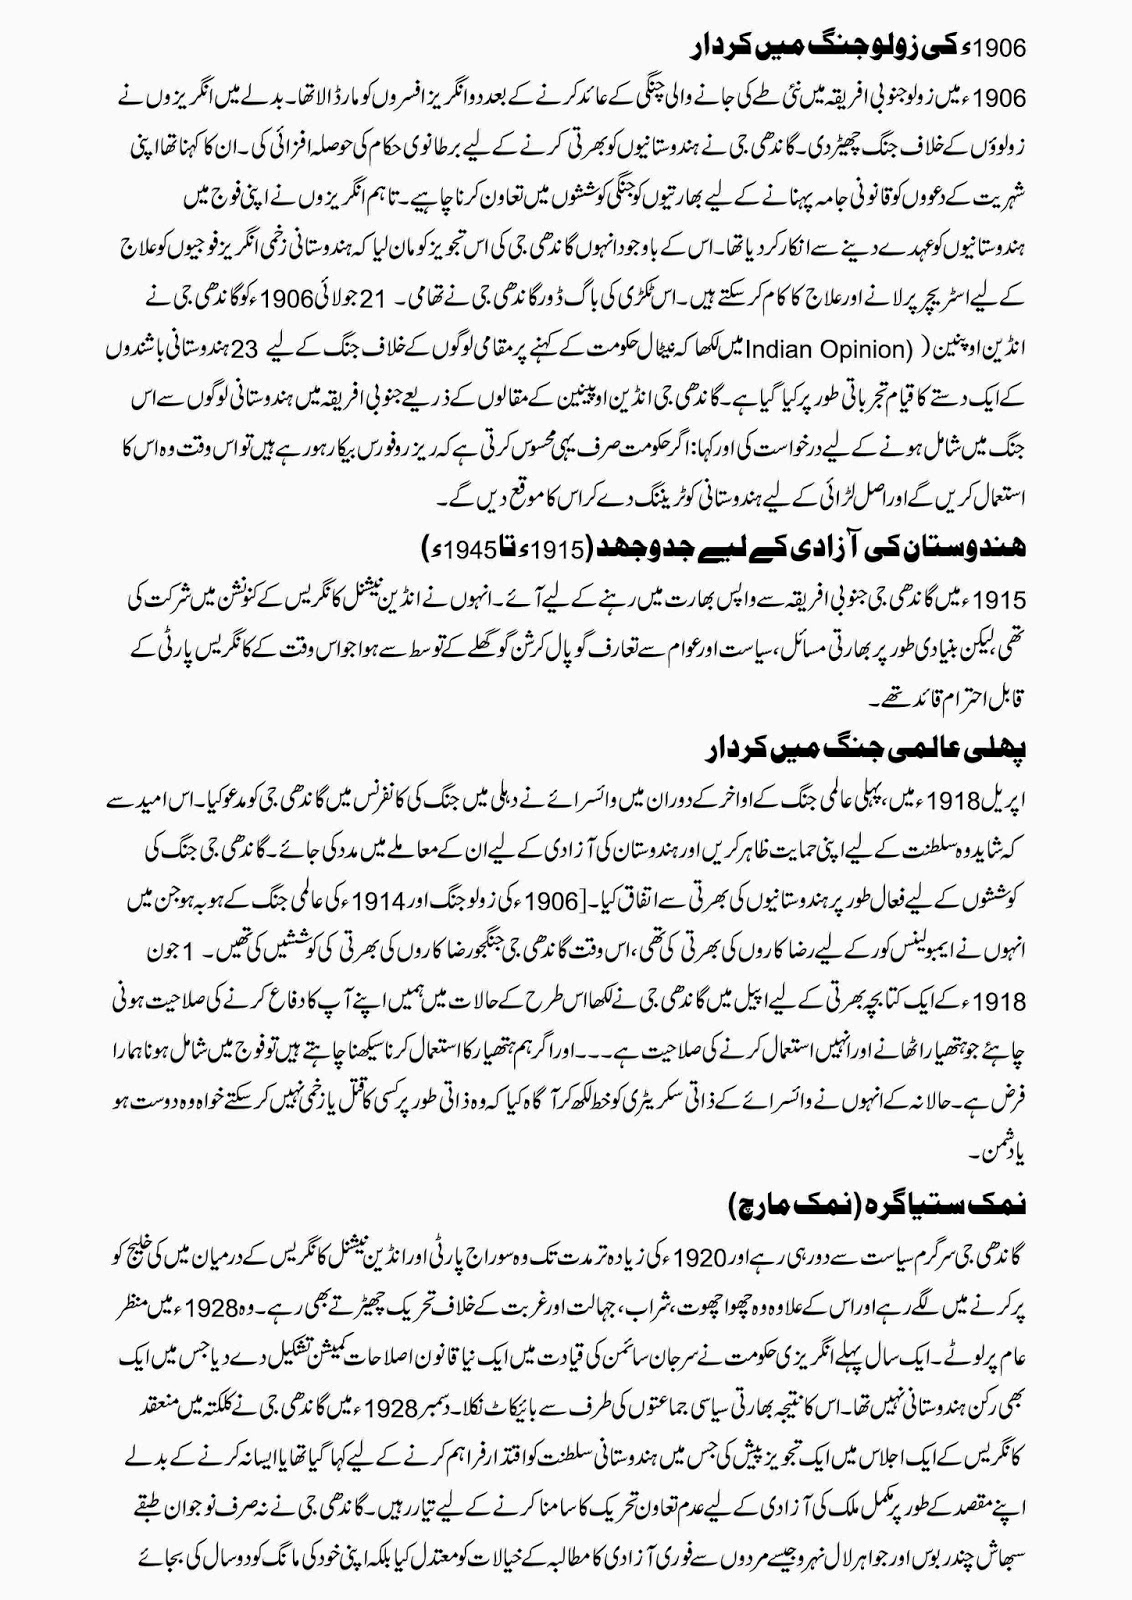 Compare Contrast Essay Examples High School Mahatma Gandhi Essay In Urdu What Is A Thesis Statement In An Essay Examples also Essay On Importance Of English Language Essay On Mahatma Gandhi In Urdu English Composition Essay